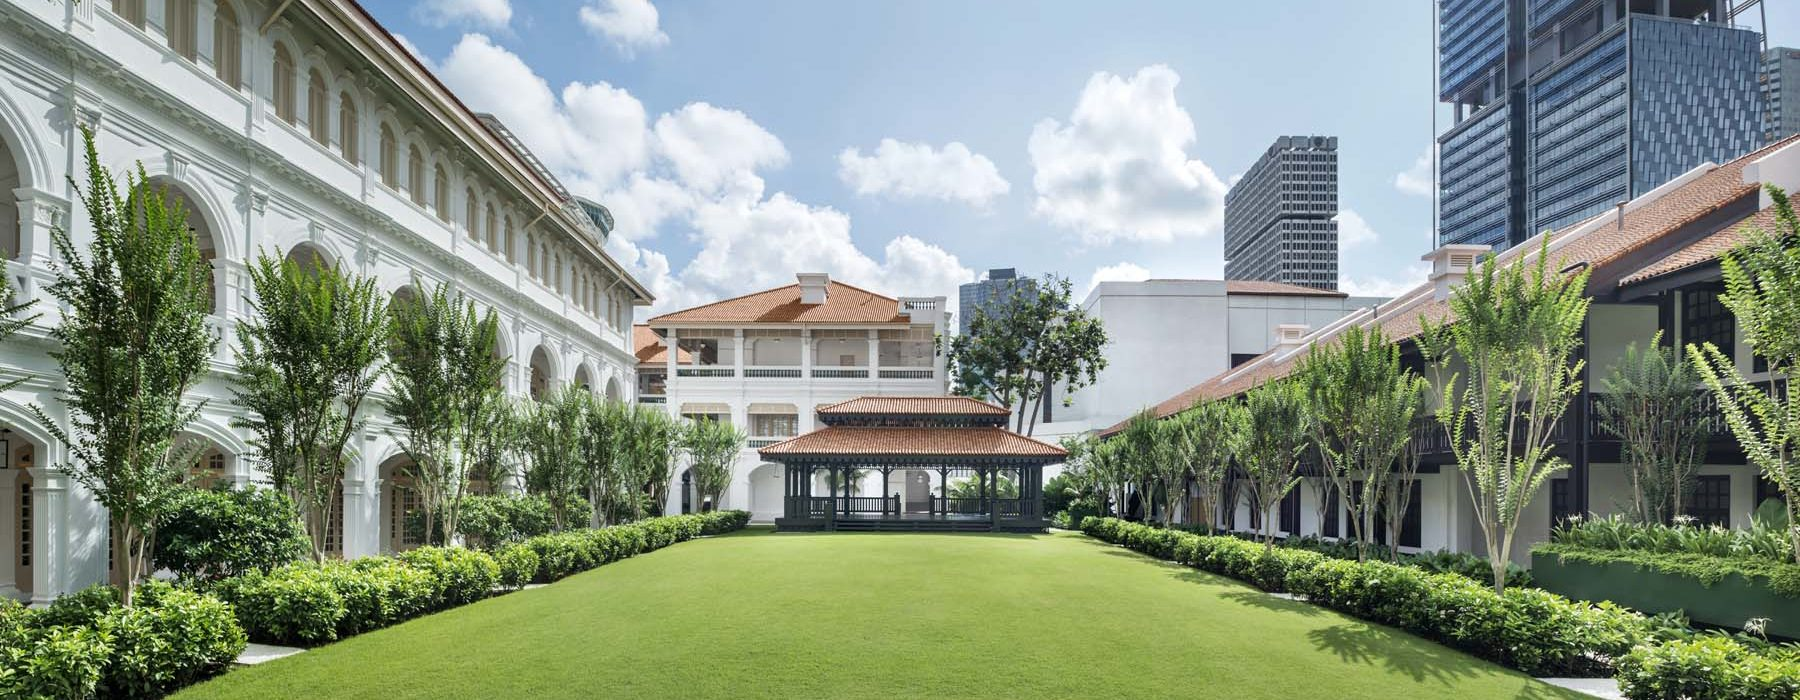 Raffles Singapore - Meetings & Events